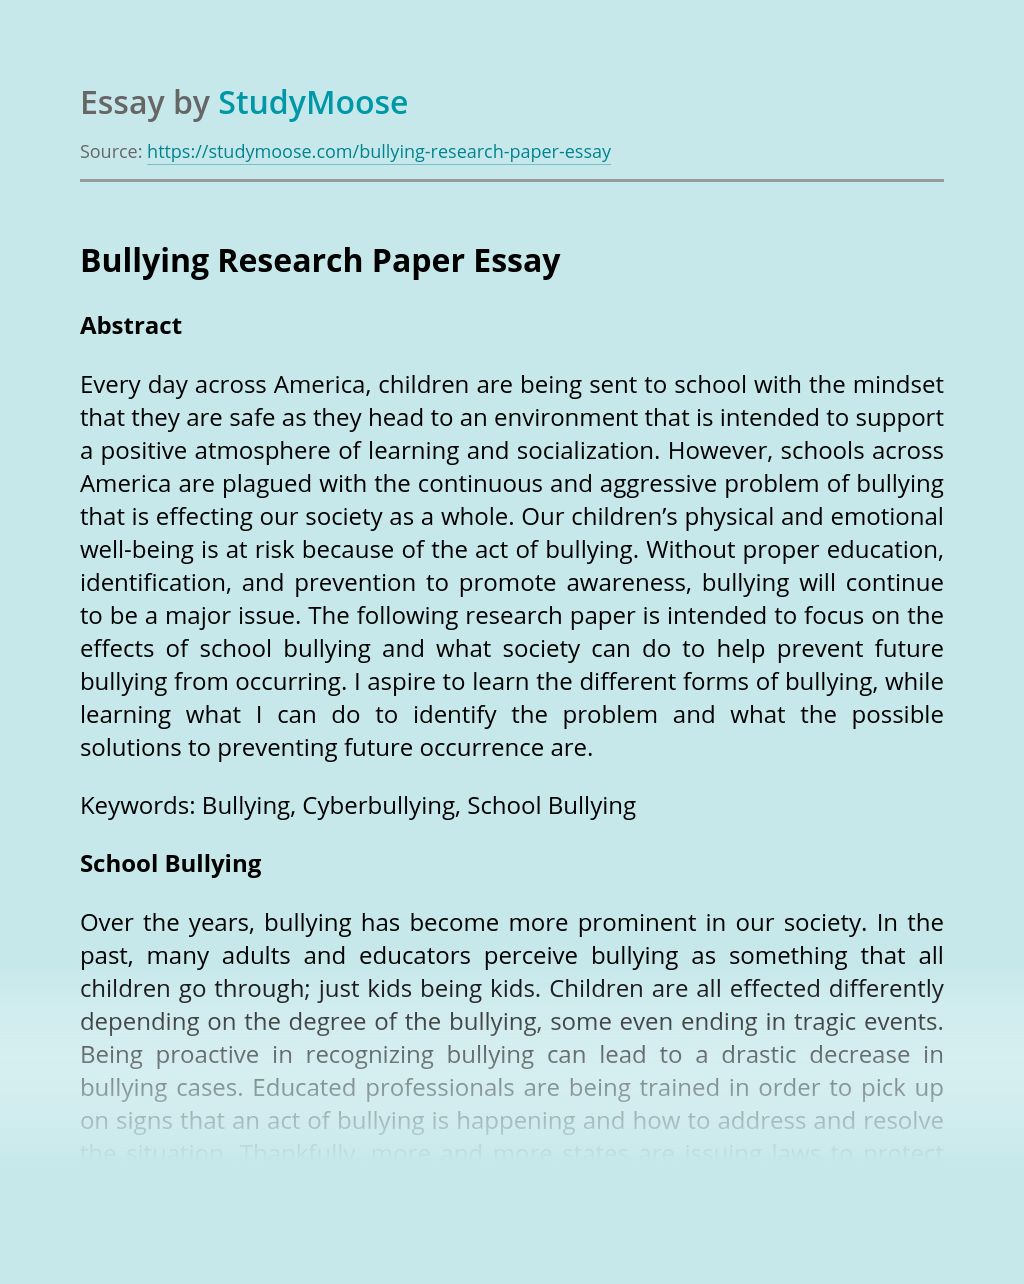 Bullying Research Paper